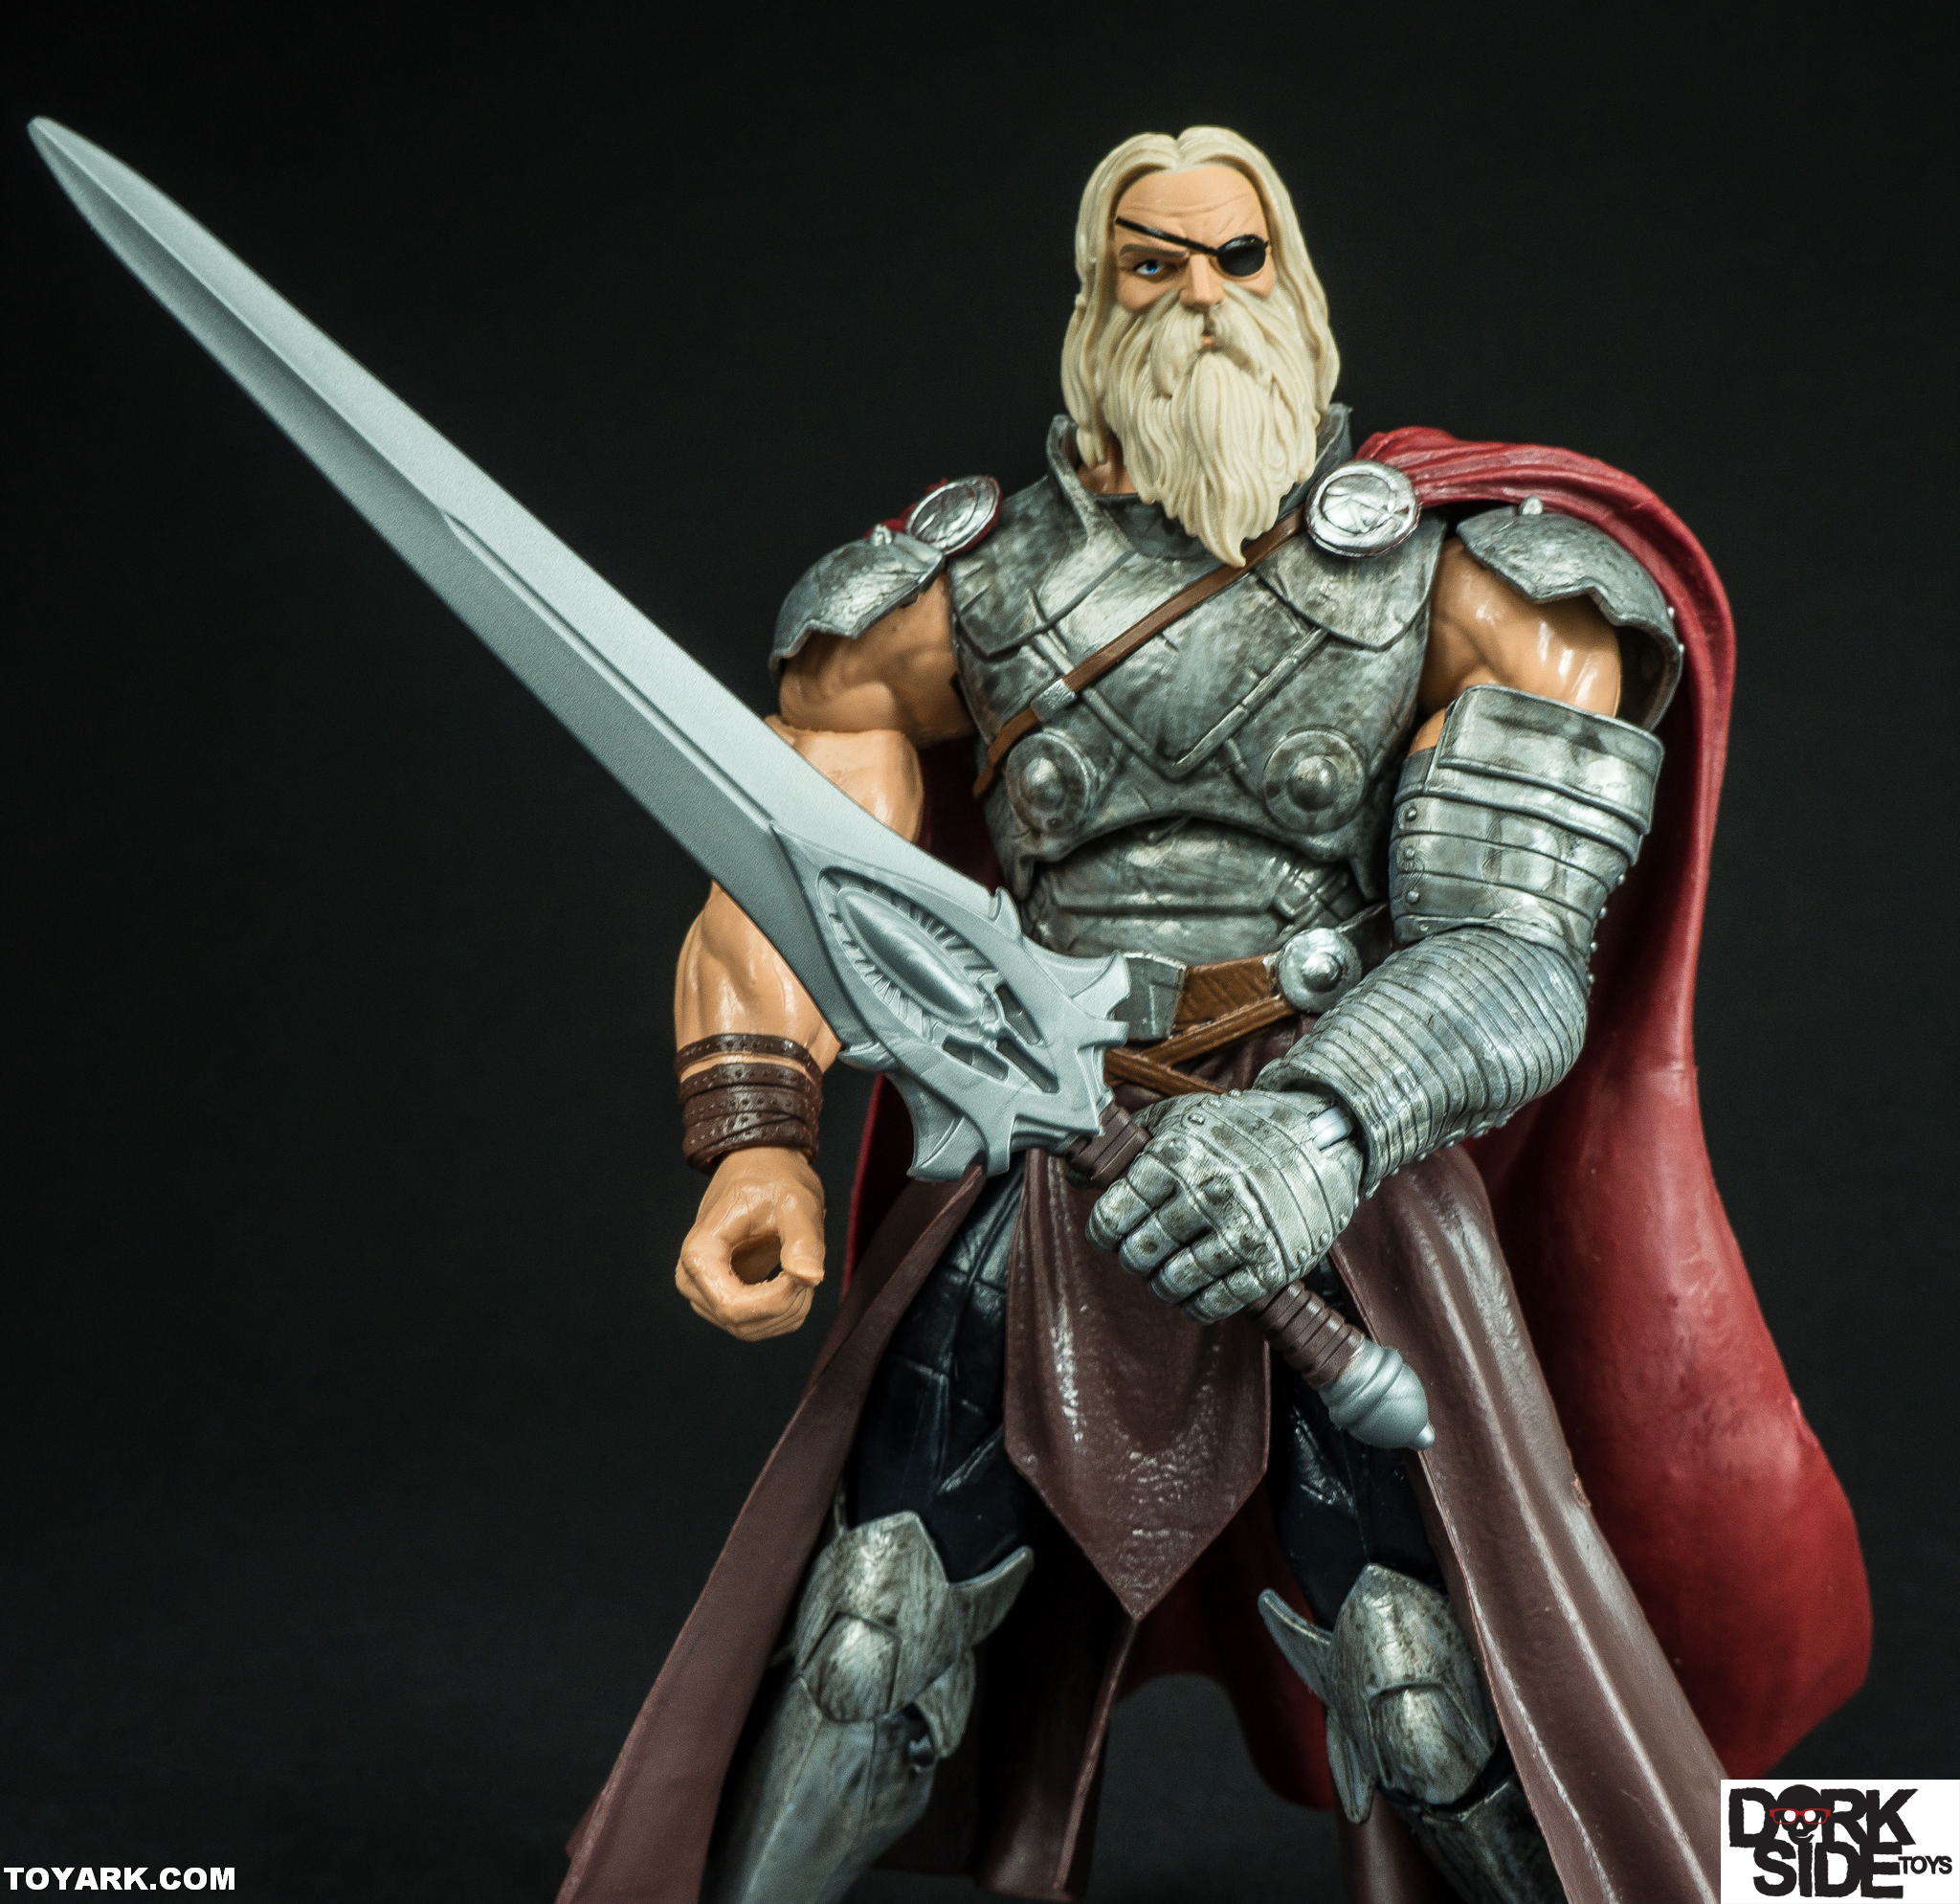 Marvel Legends Odin BAF Allfather Wave Photo Shoot - The ...